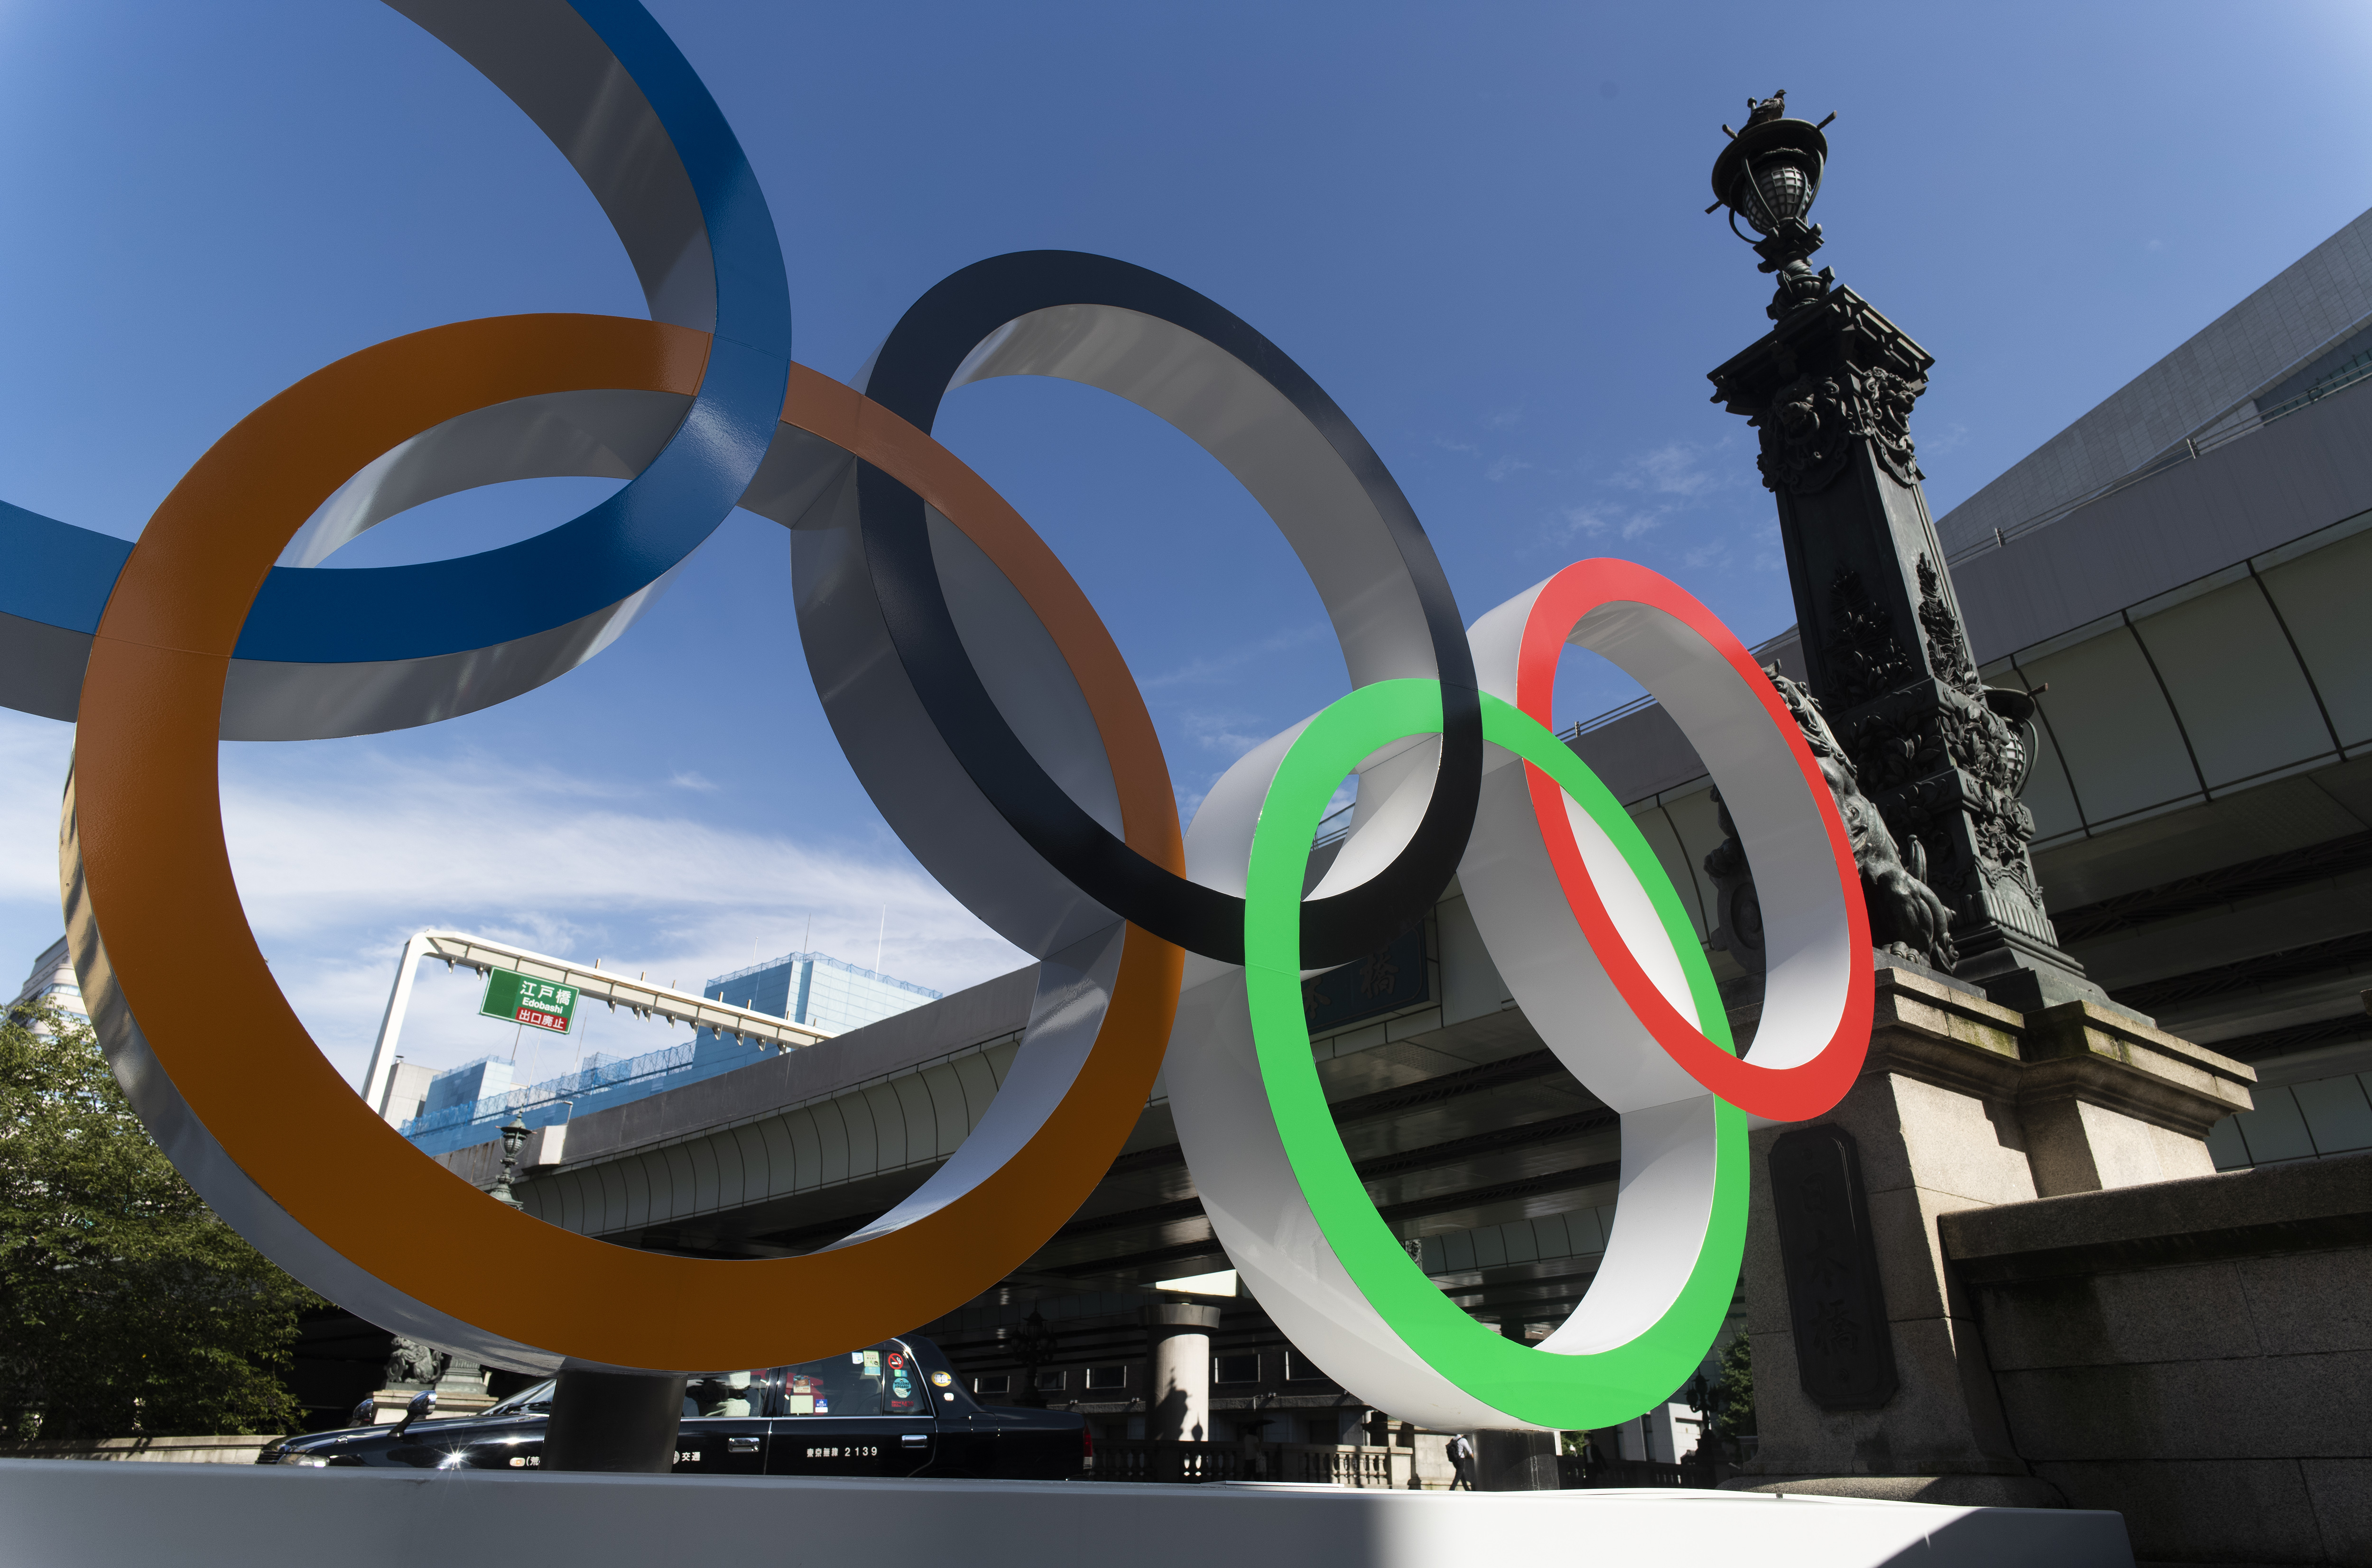 The Olympic rings installed by the Nippon Bashi bridge in Tokyo are pictured on Thursday, July 15, 2021.